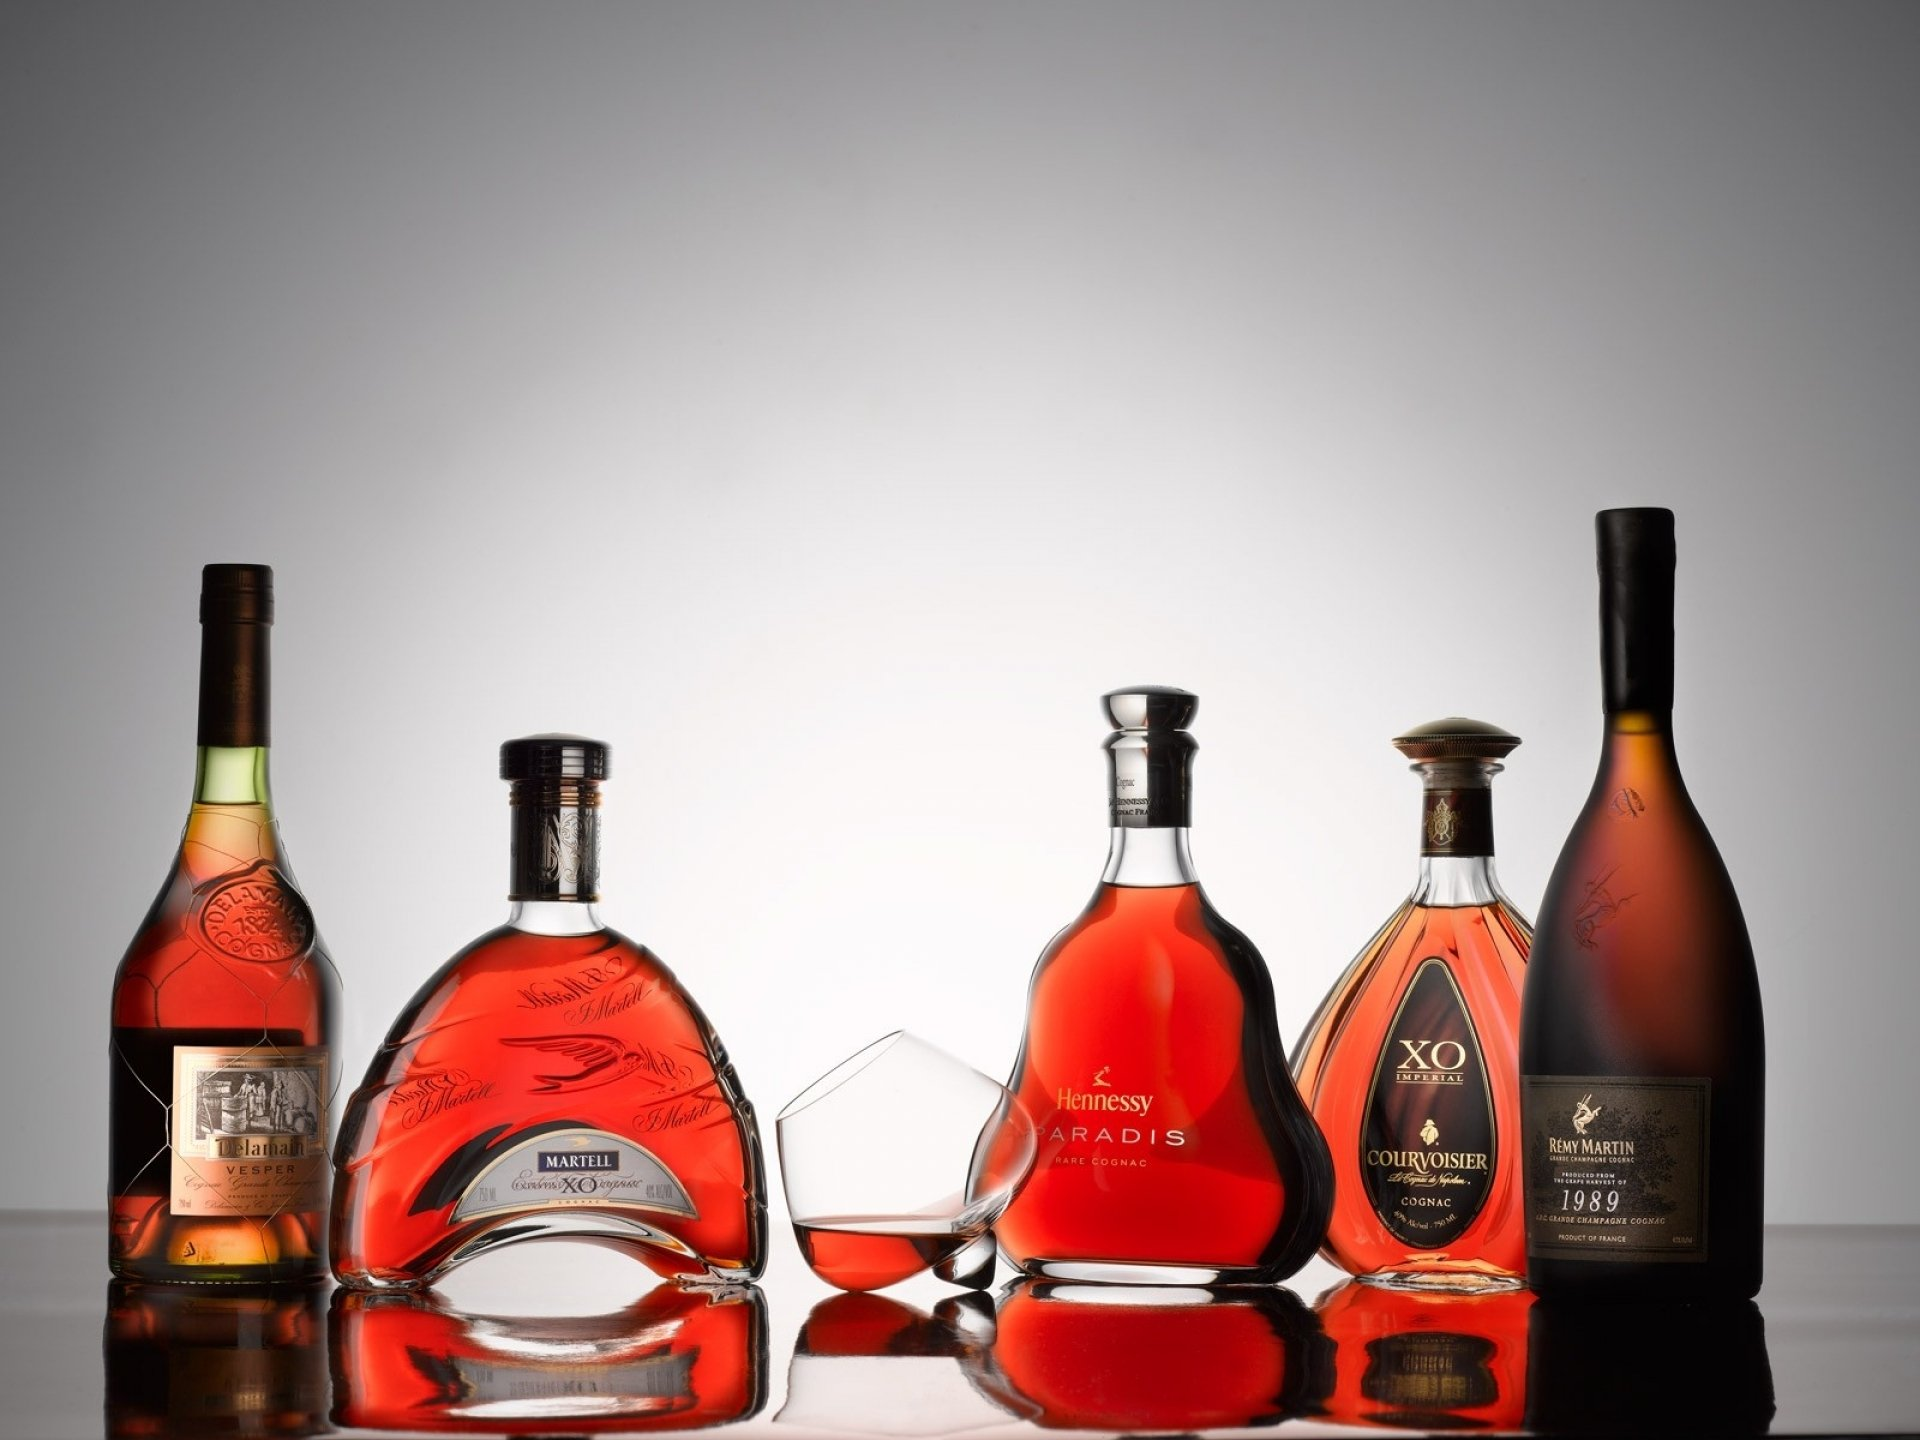 liquor bottles wallpaper - photo #6